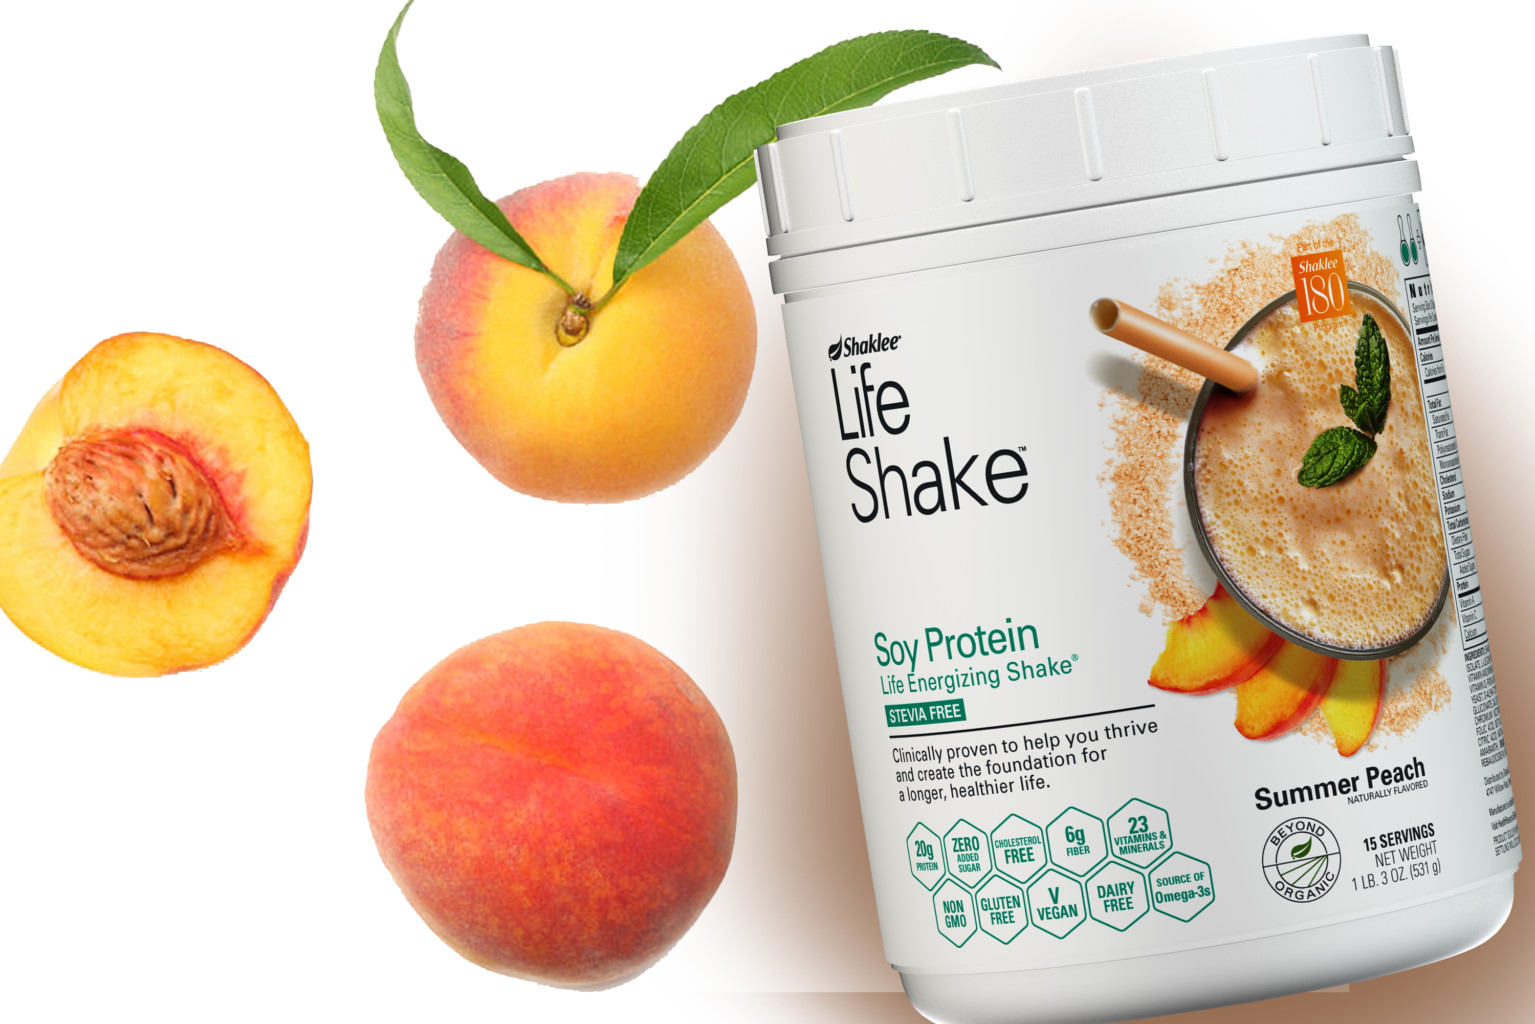 Available Now! New-and-Improved Summer Peach Life Shake™